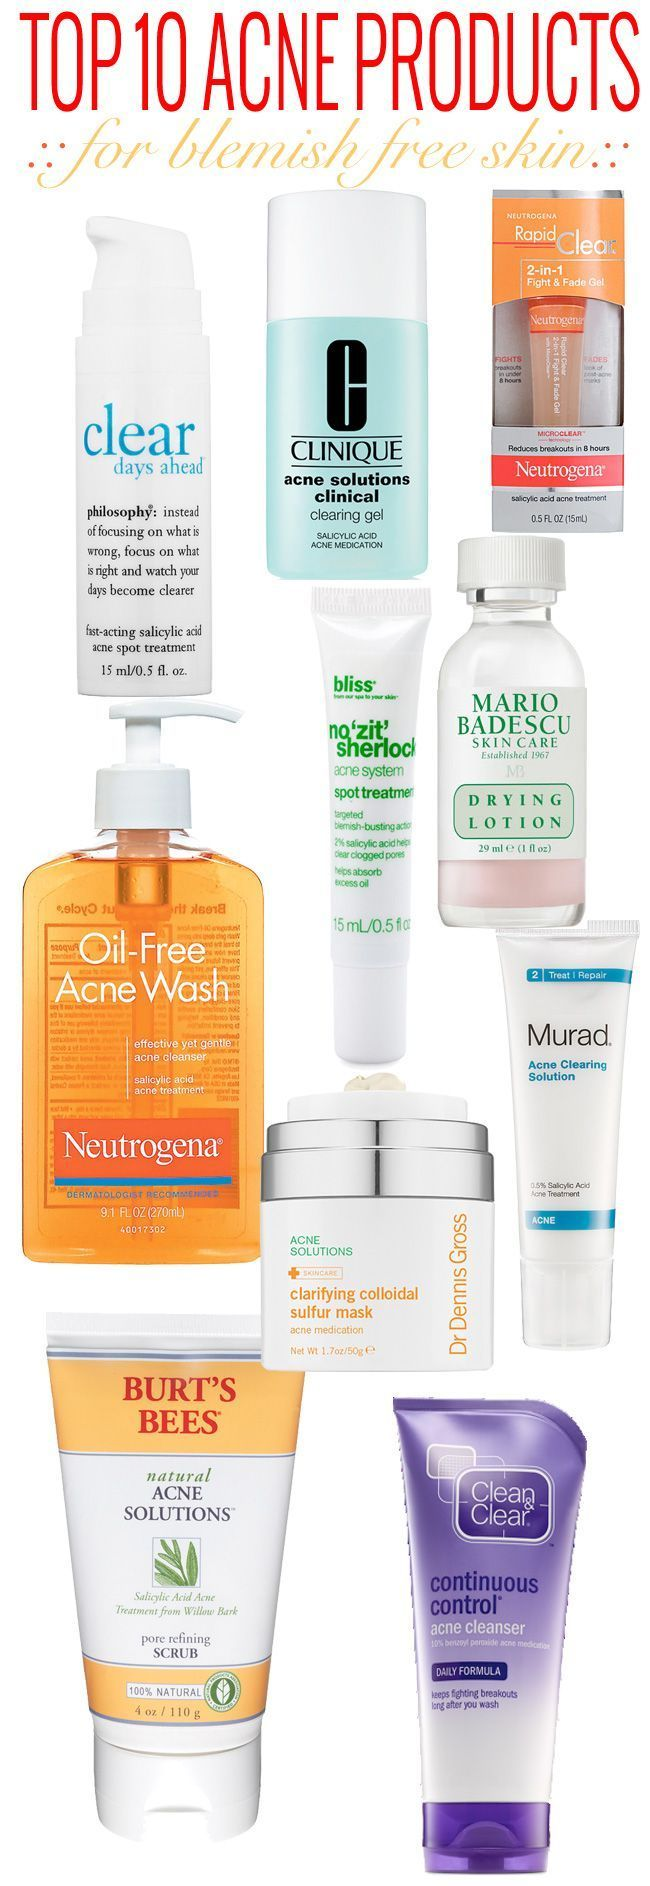 Top 10 Acne Products. – #acne #products #Top